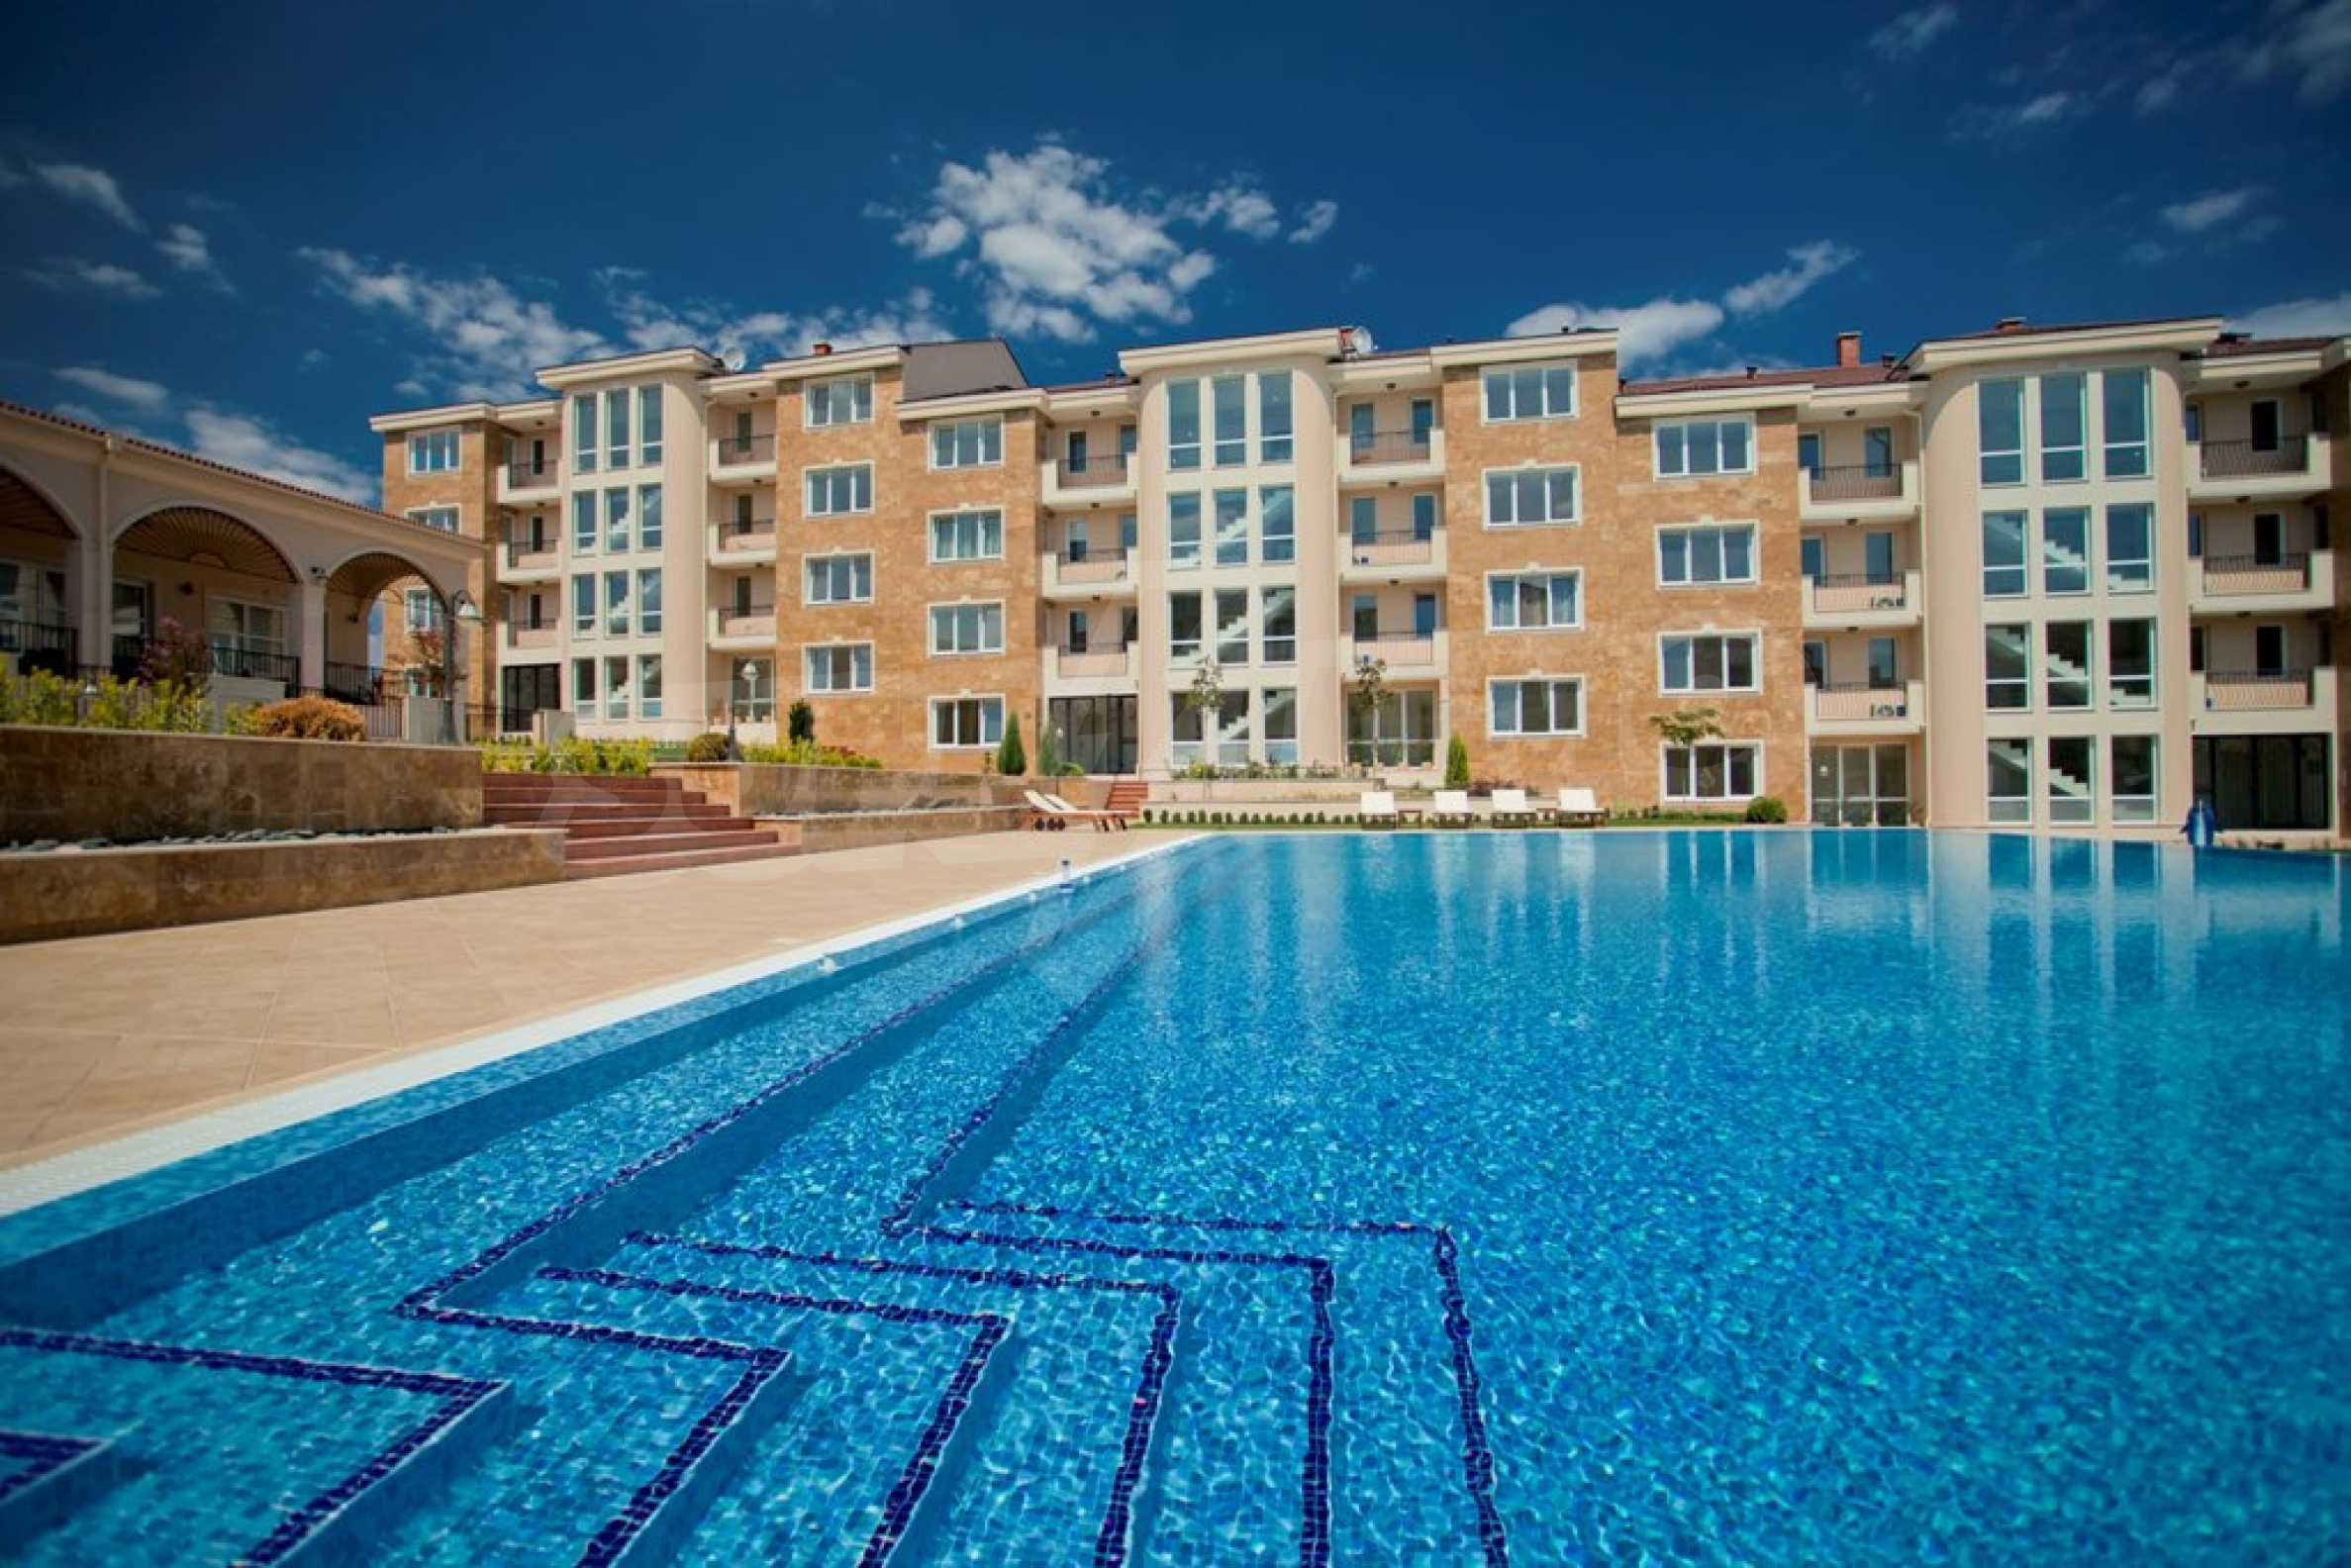 New apartment complex Atia resort in Chernomorets 6